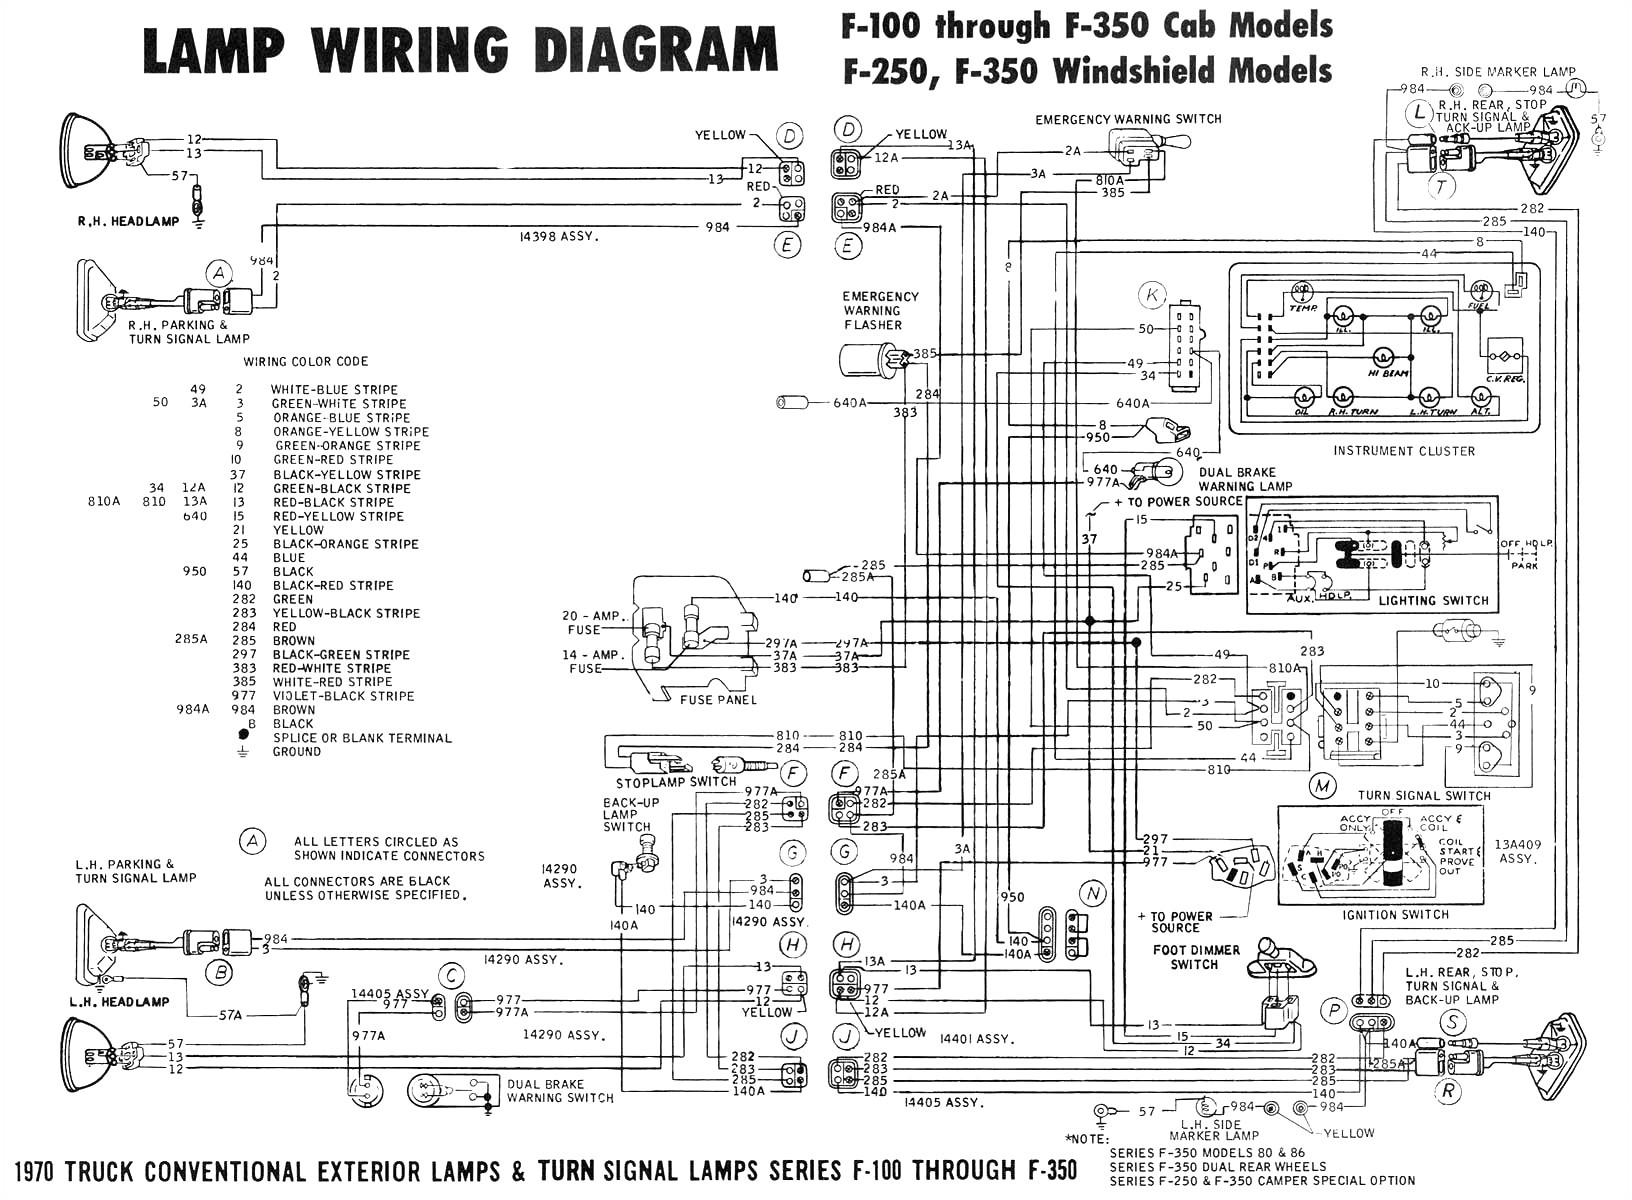 57 Chevy Ignition Switch Wiring Diagram